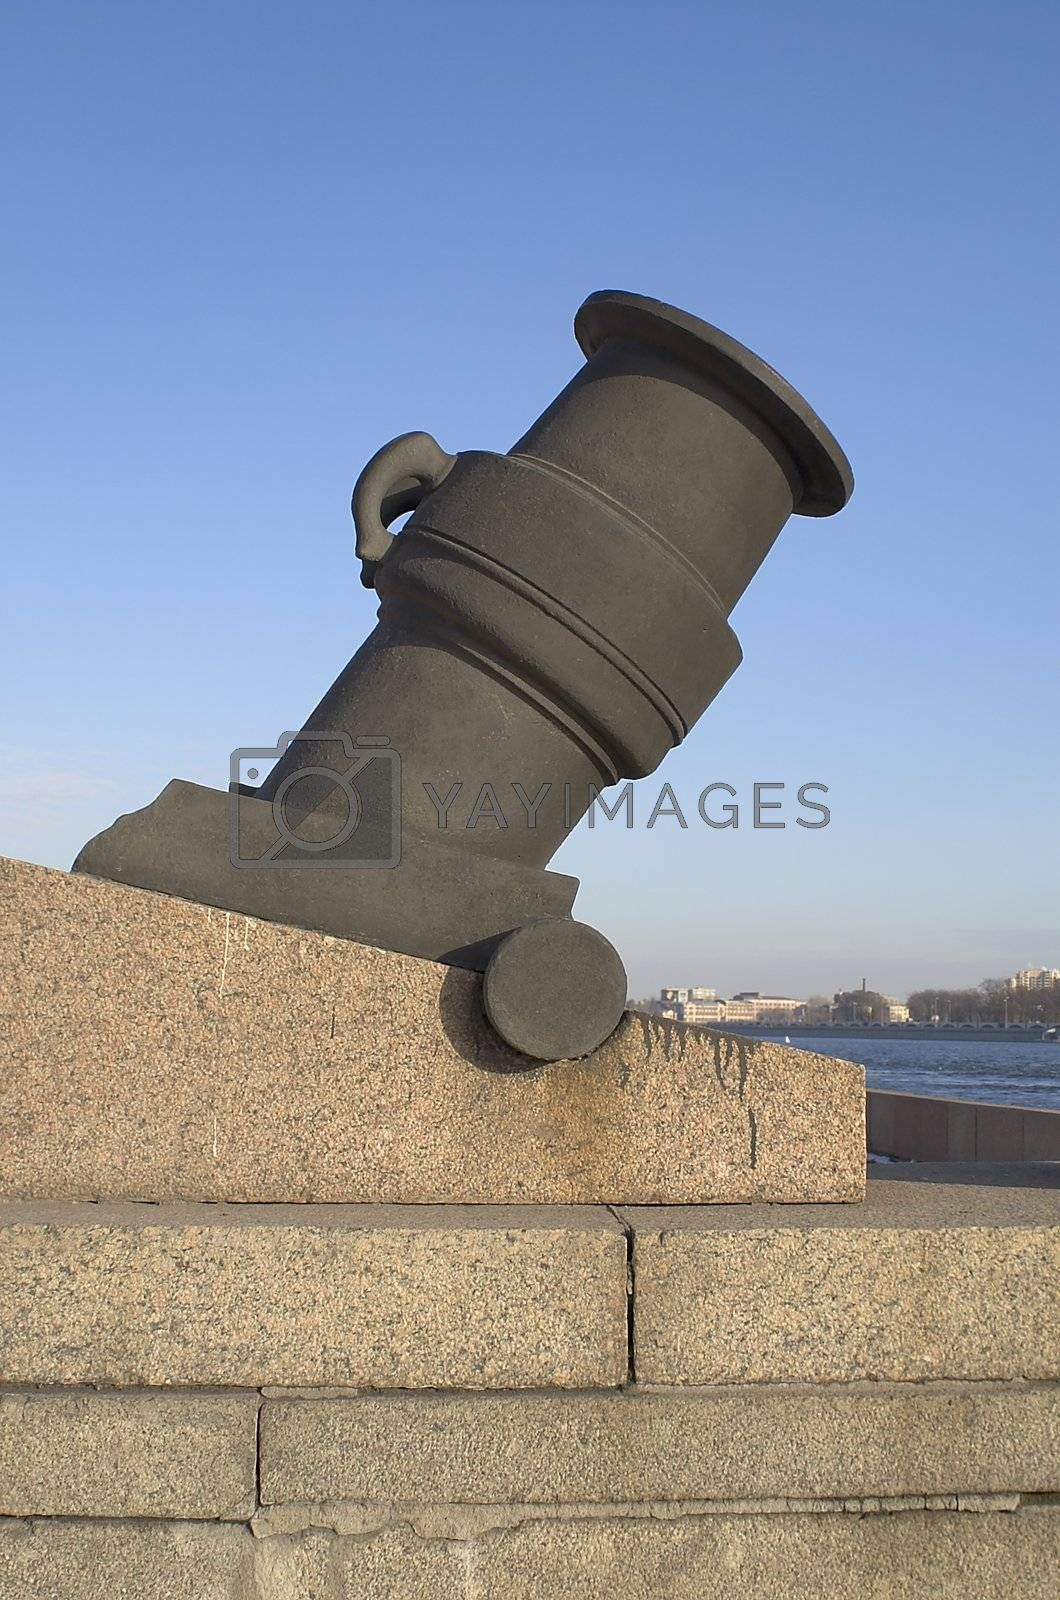 Cannon at Arsenal Embankment in Saint Petersburg, Russia.